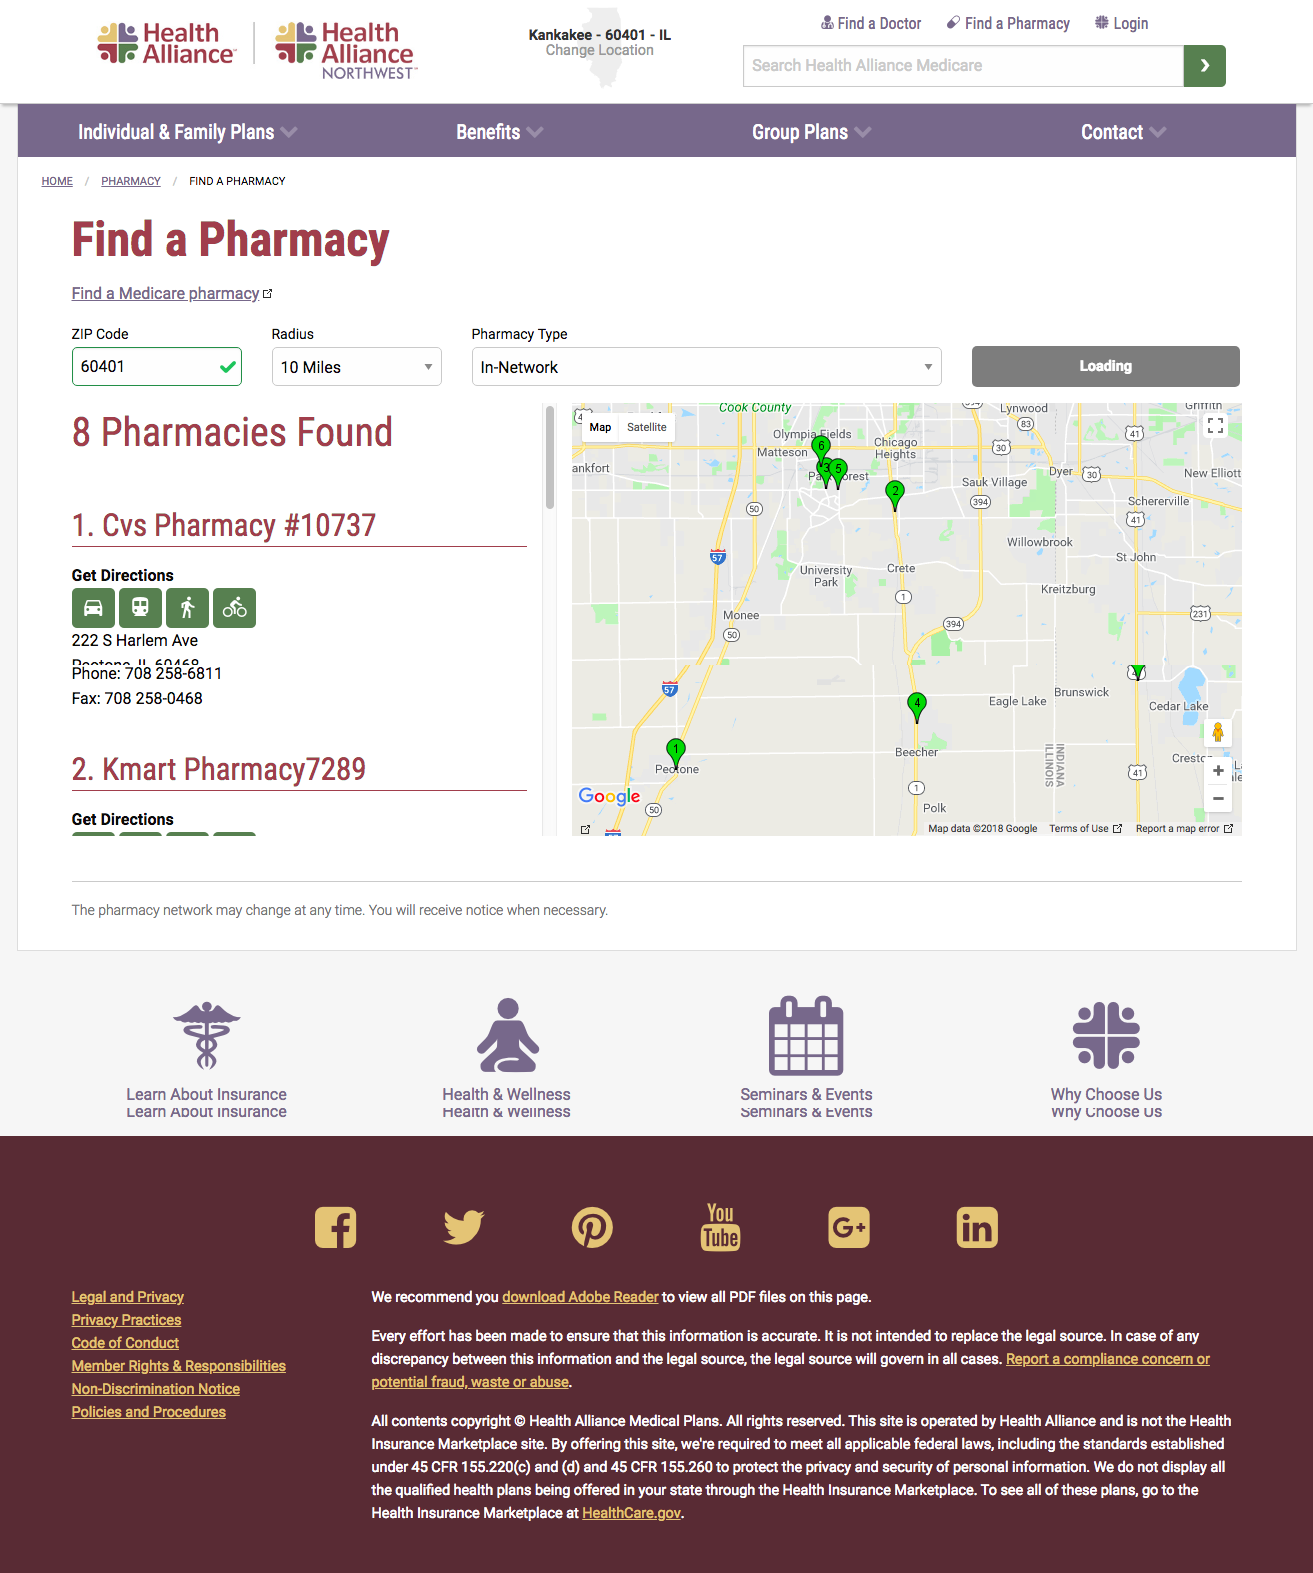 Pharmacy search page